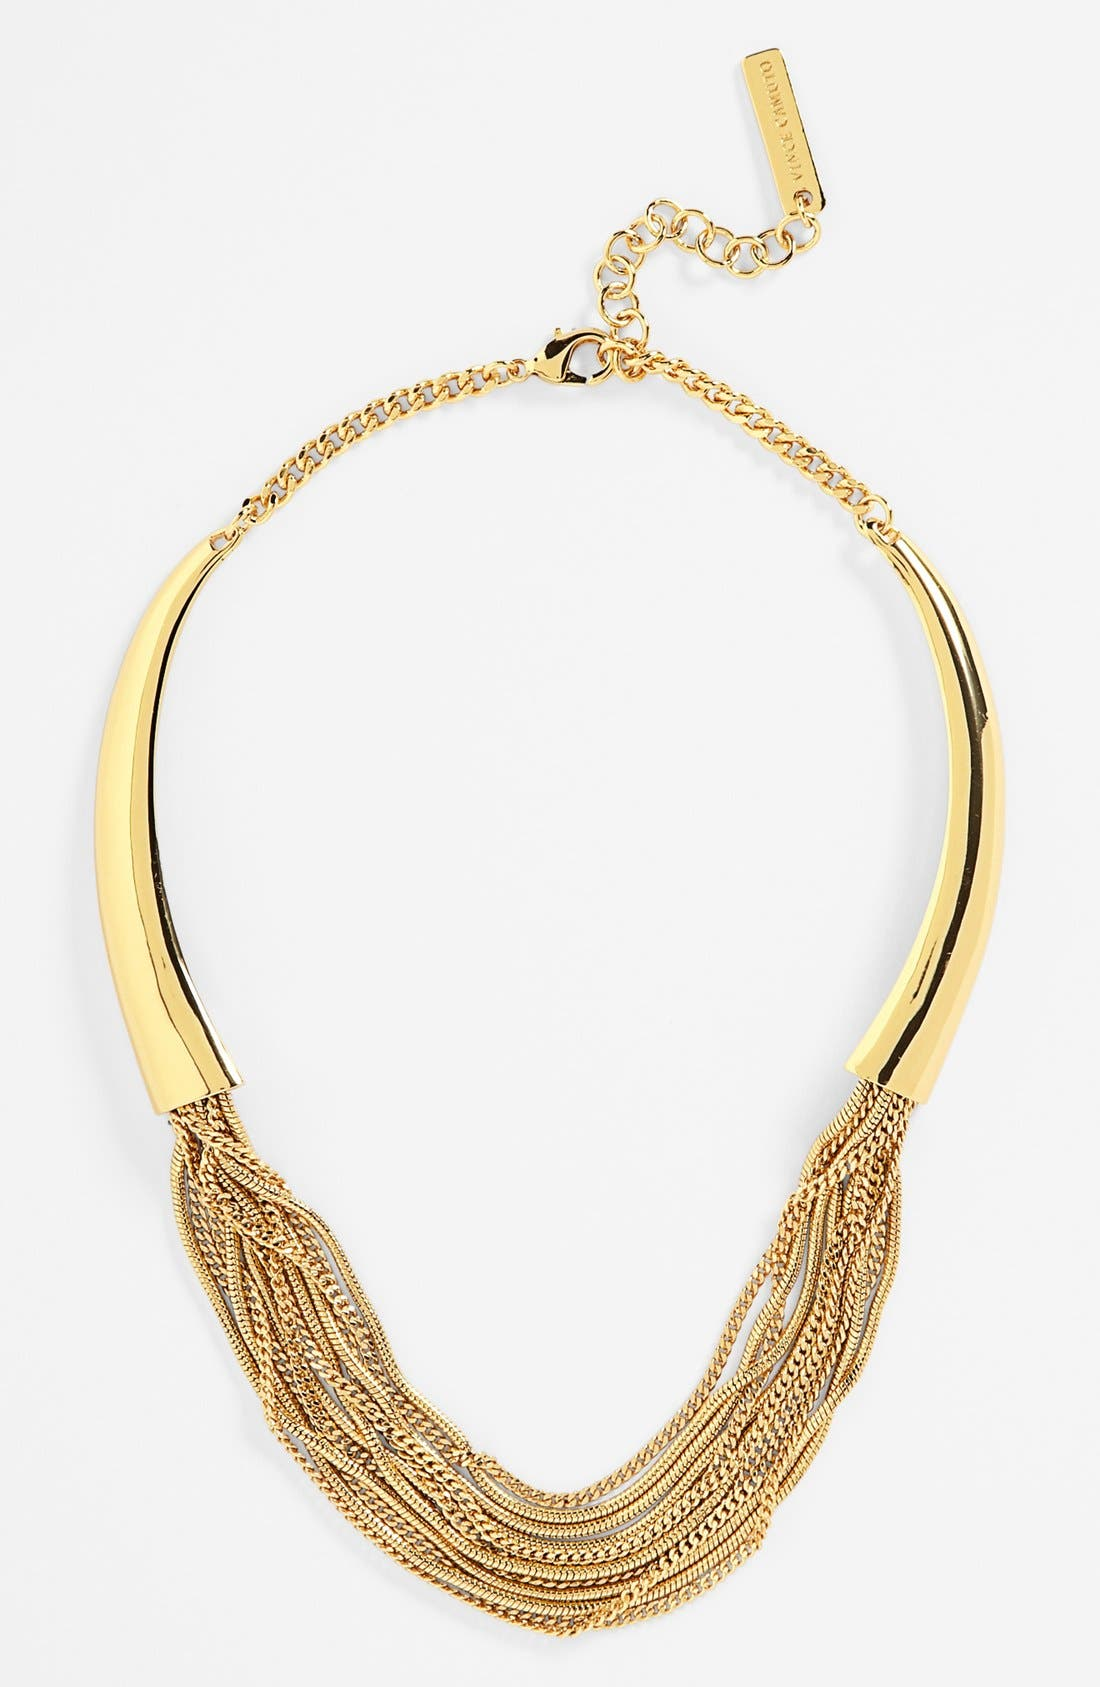 Main Image - Vince Camuto 'By the Horns' Collar Necklace